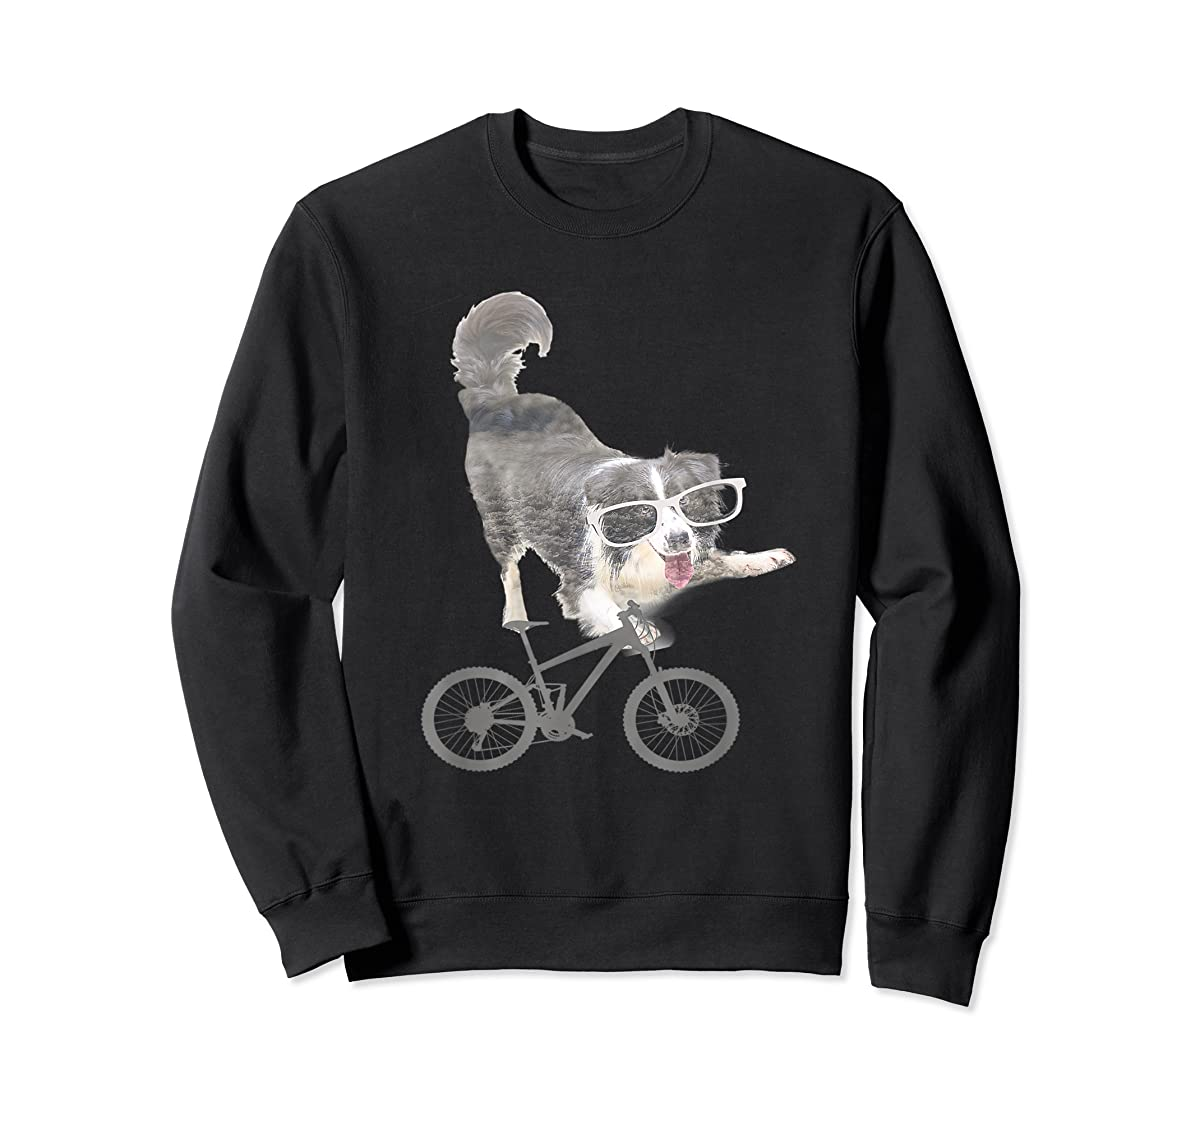 Border collie on a Bicycle T-shirt-Sweatshirt-Black